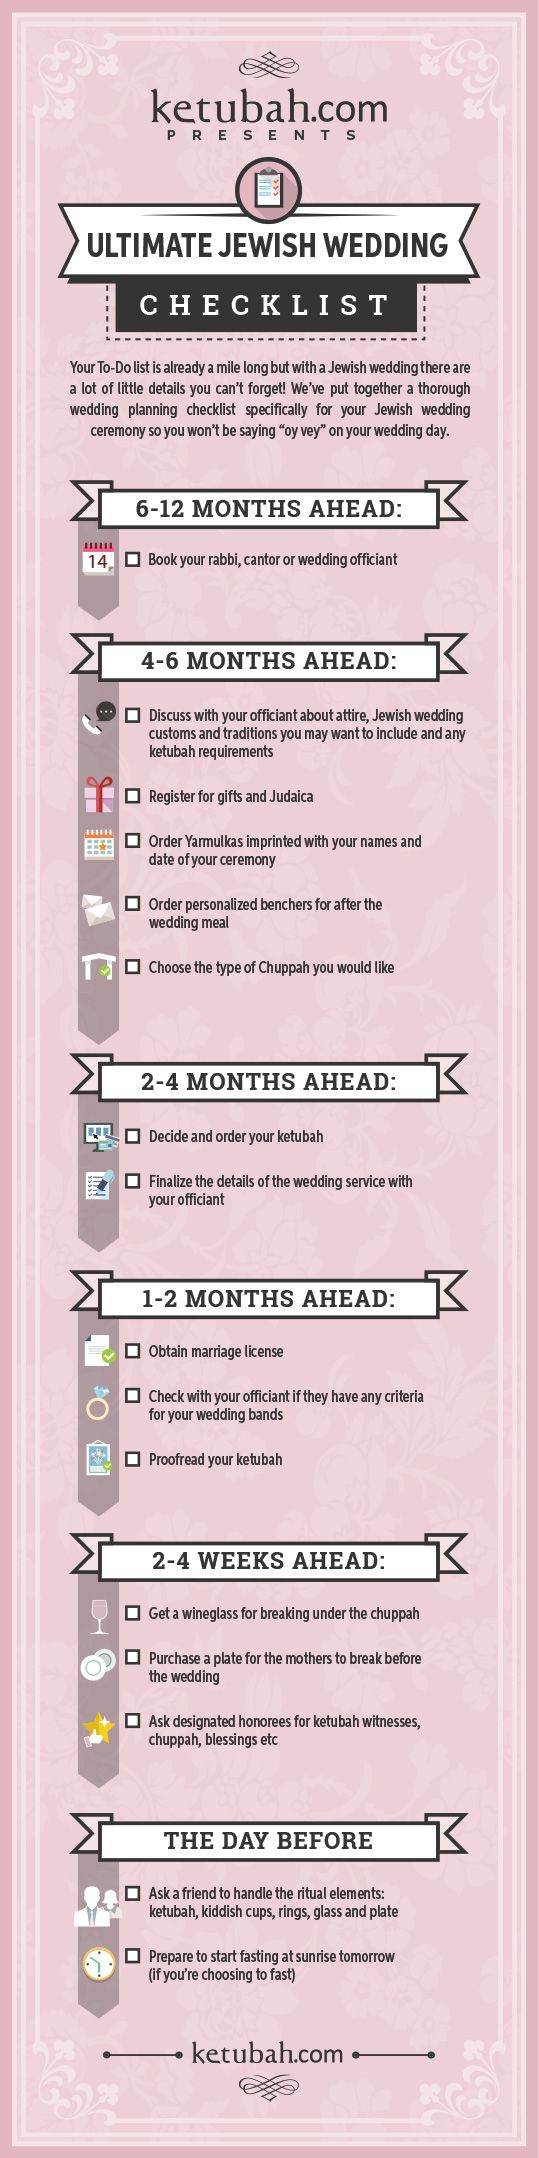 Download this Ultimate Jewish Wedding Checklist from the experts at Ketubah.com. Click on the checklist for more detailed explanations of each item so you know exactly what you need and why!